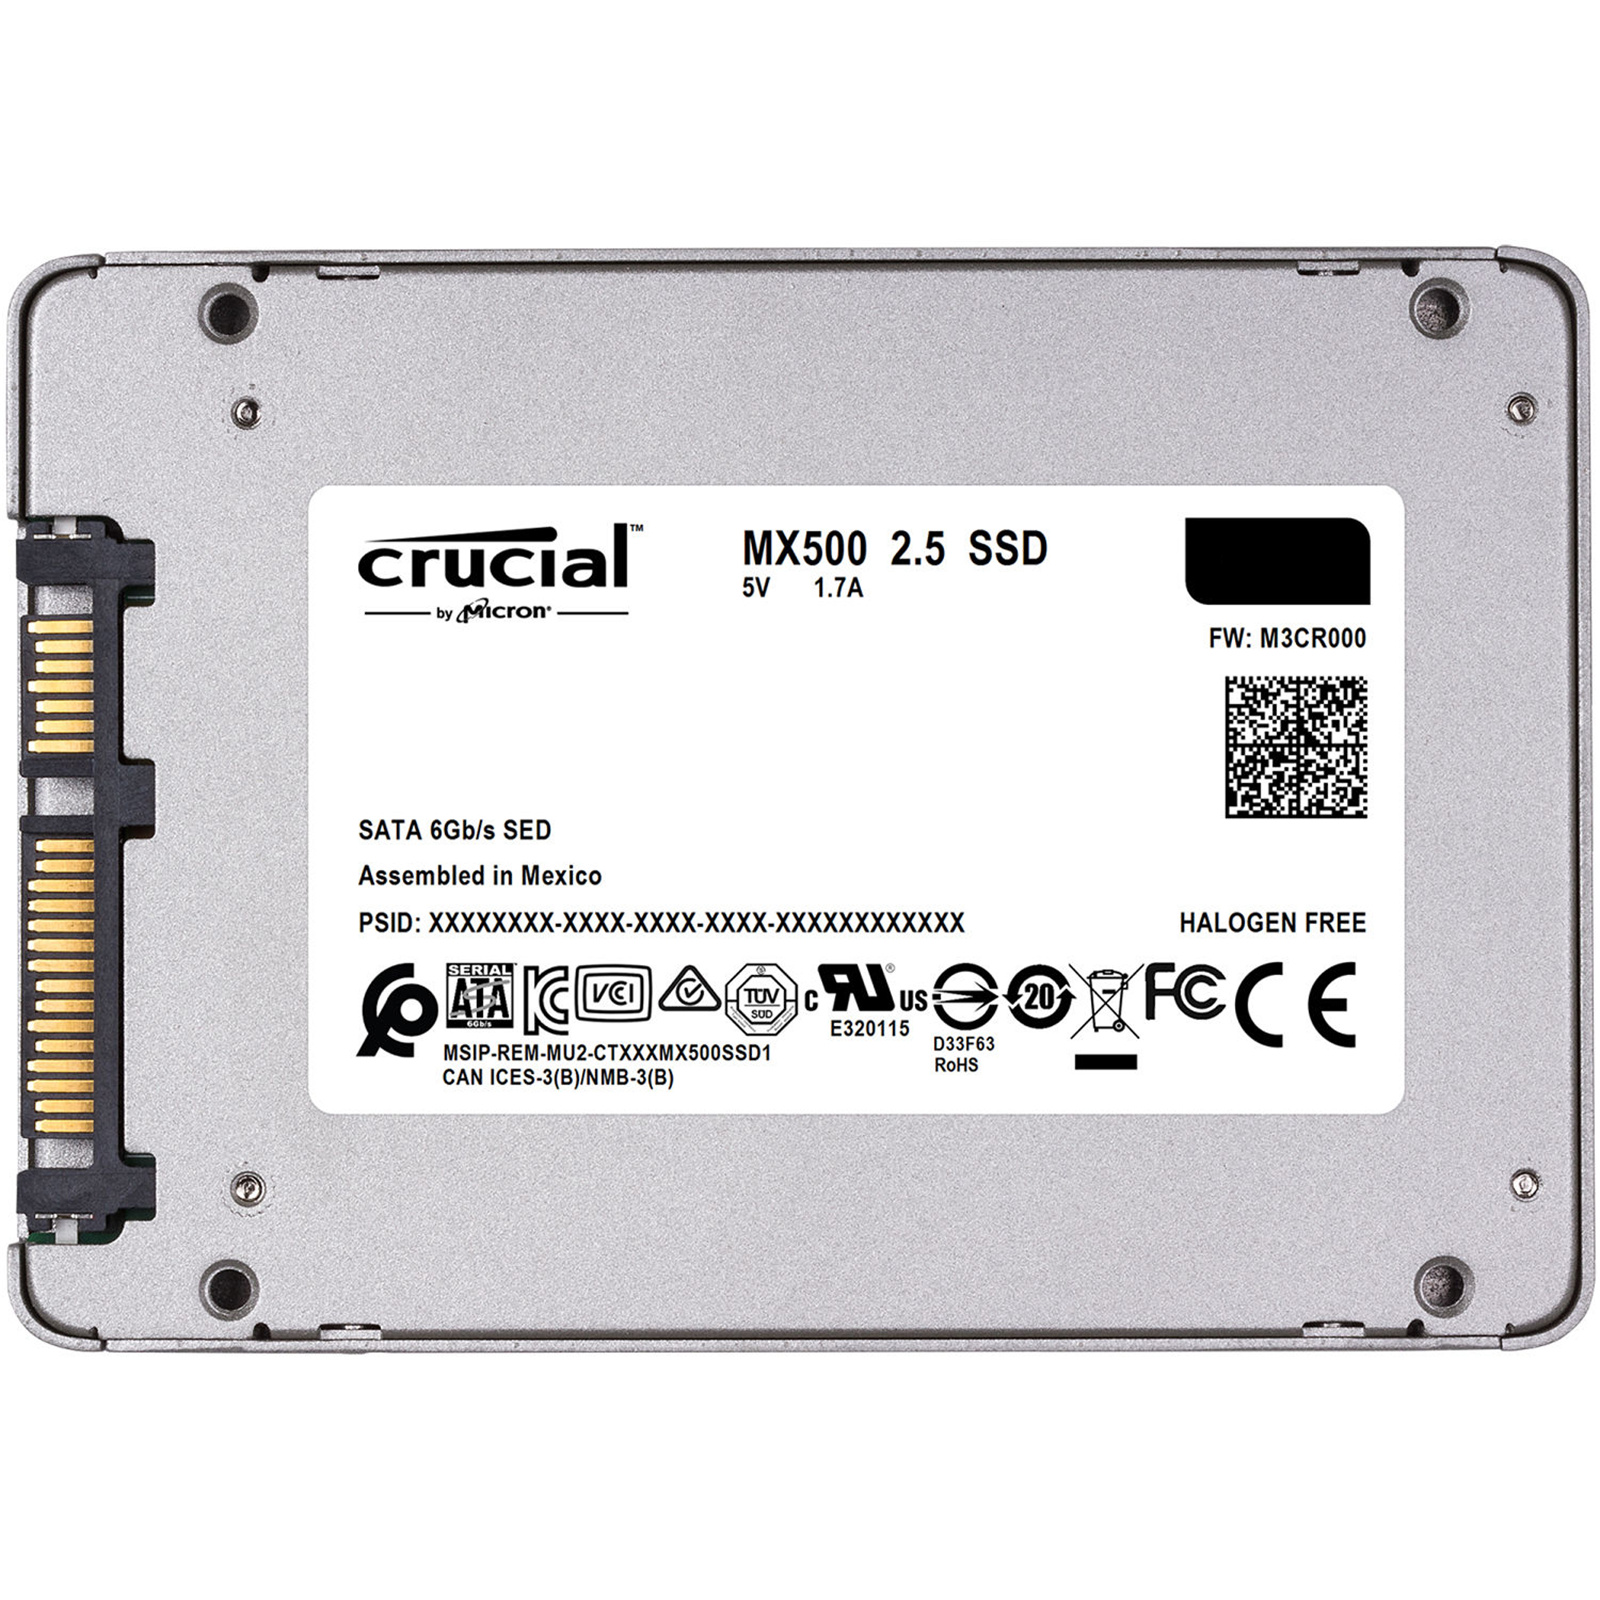 Buy The Crucial Mx500 500gb 25 Inch Ssd 7mm 95mm Adaptor 560mb Bracket Black Metal To 35 S Reading 510mb Writing 5 Years